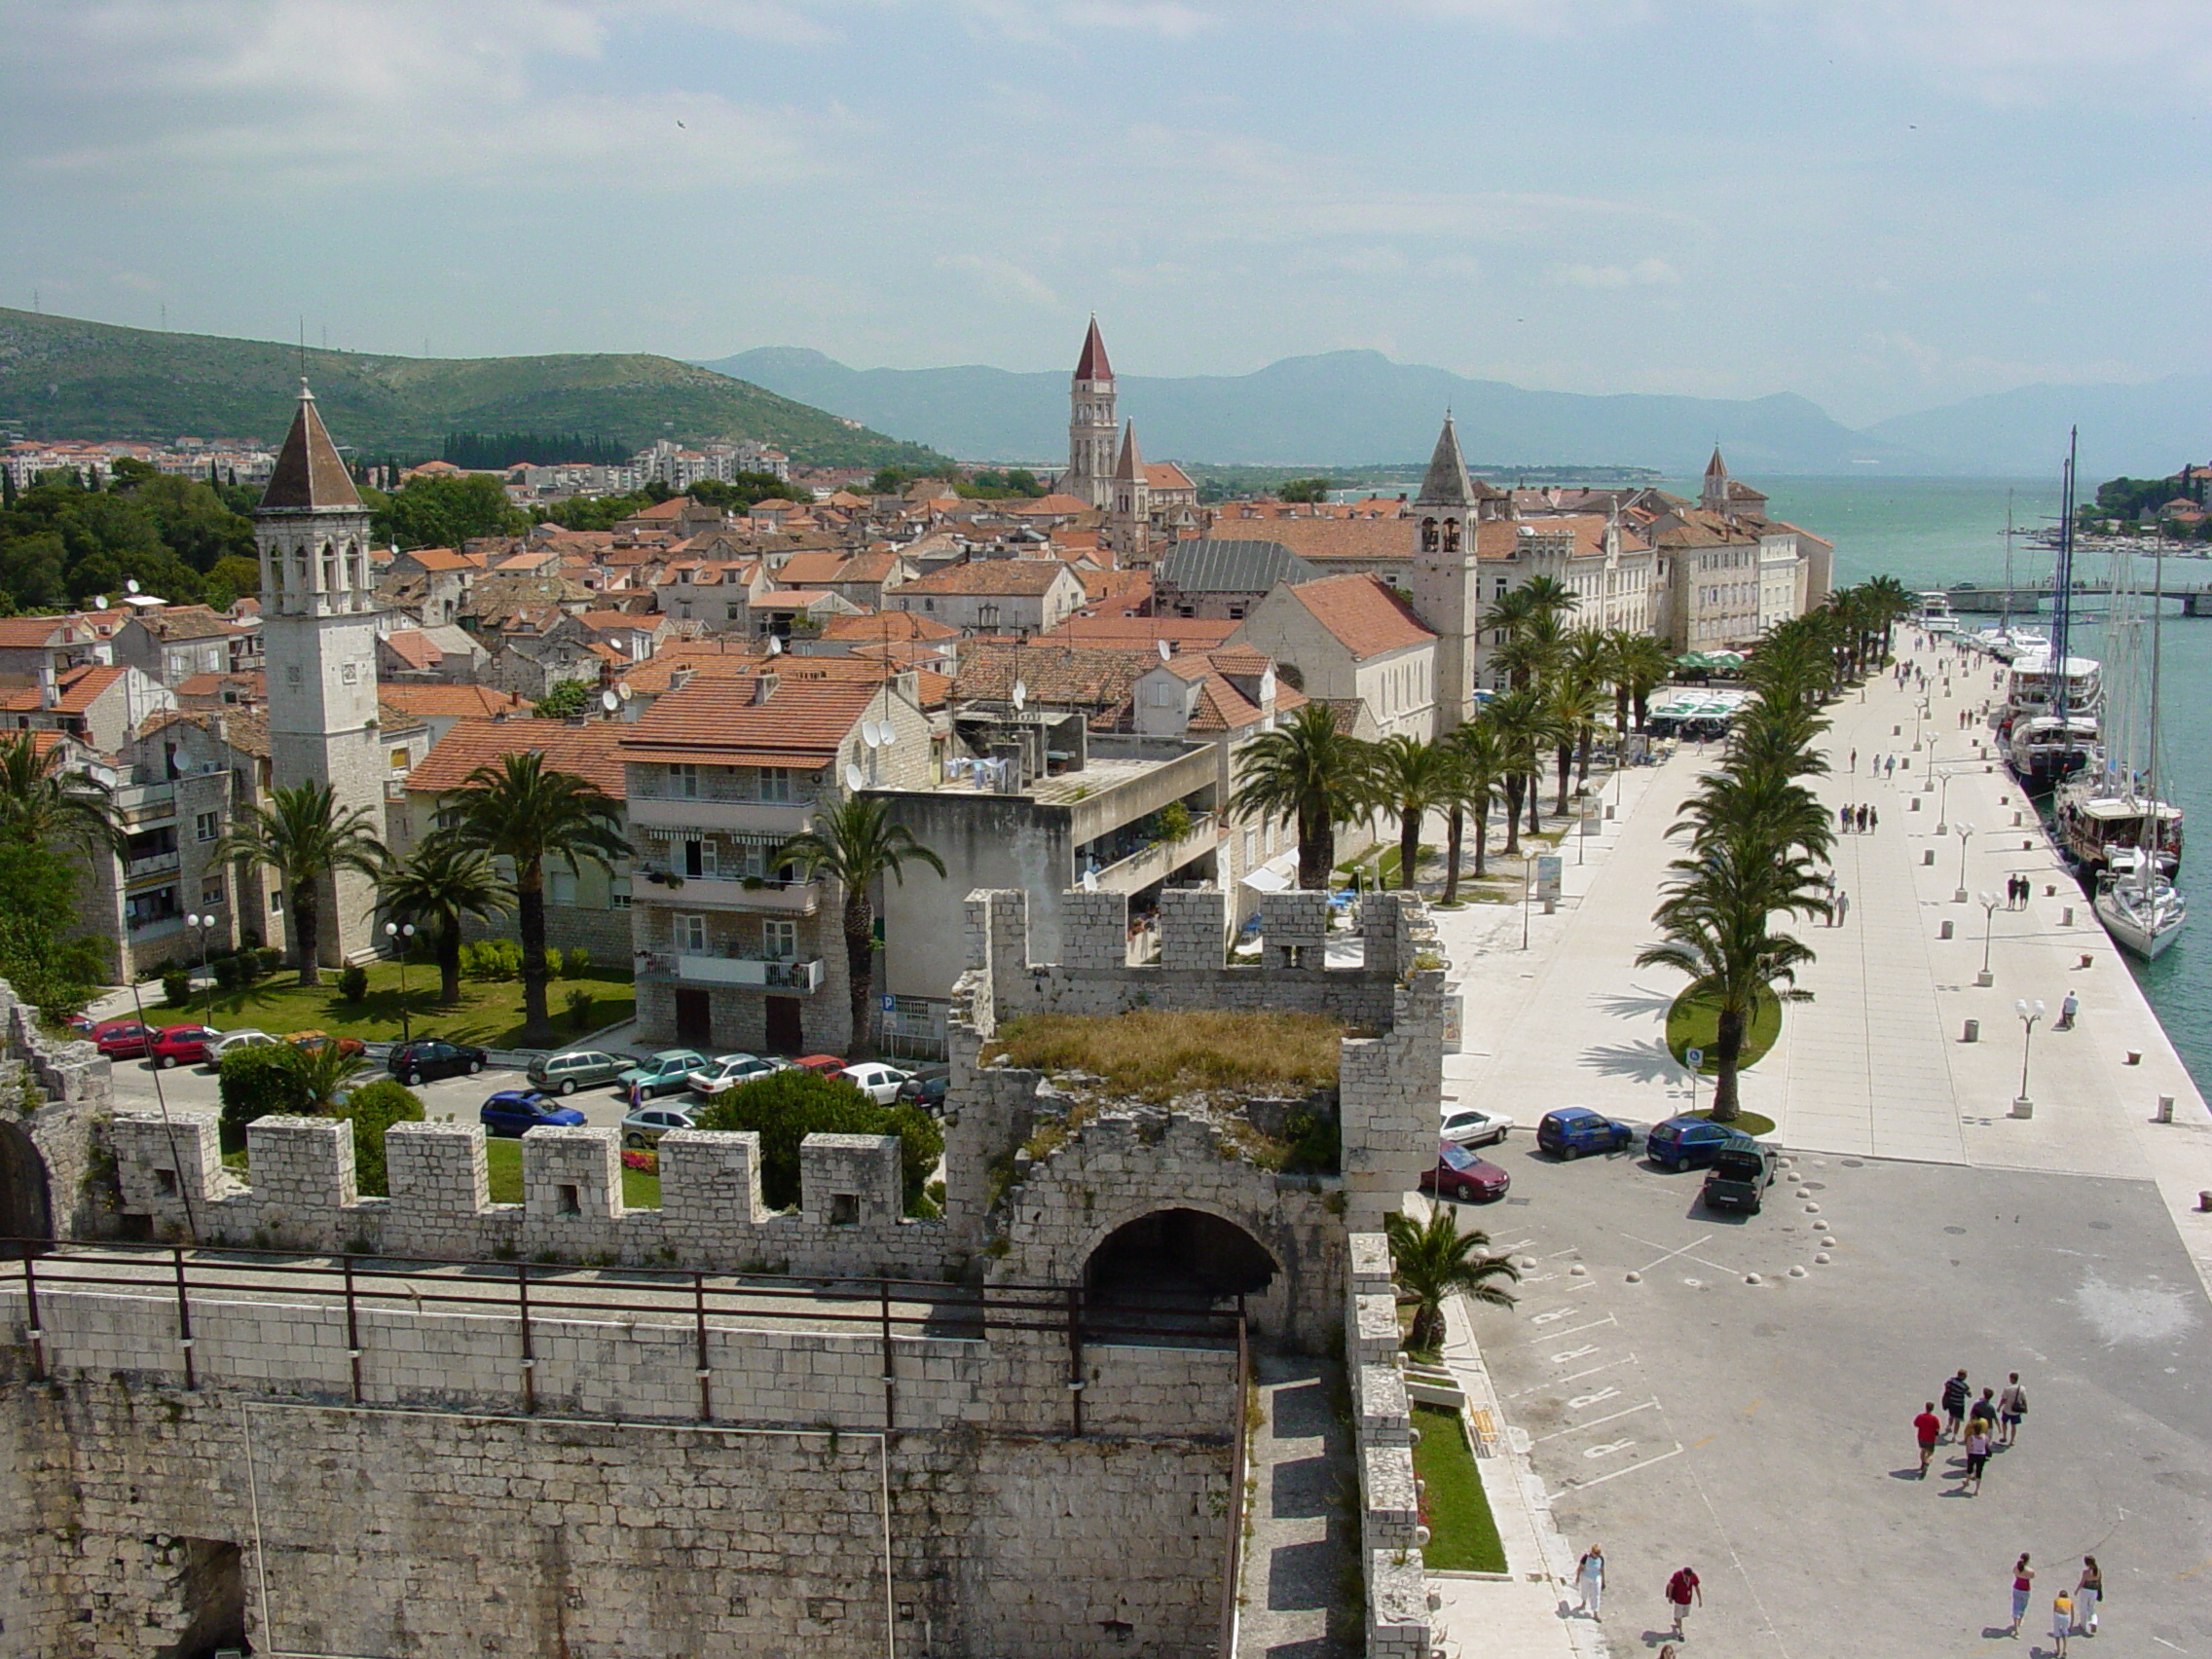 Trogir Croatia  city pictures gallery : Description View over Trogir Croatia